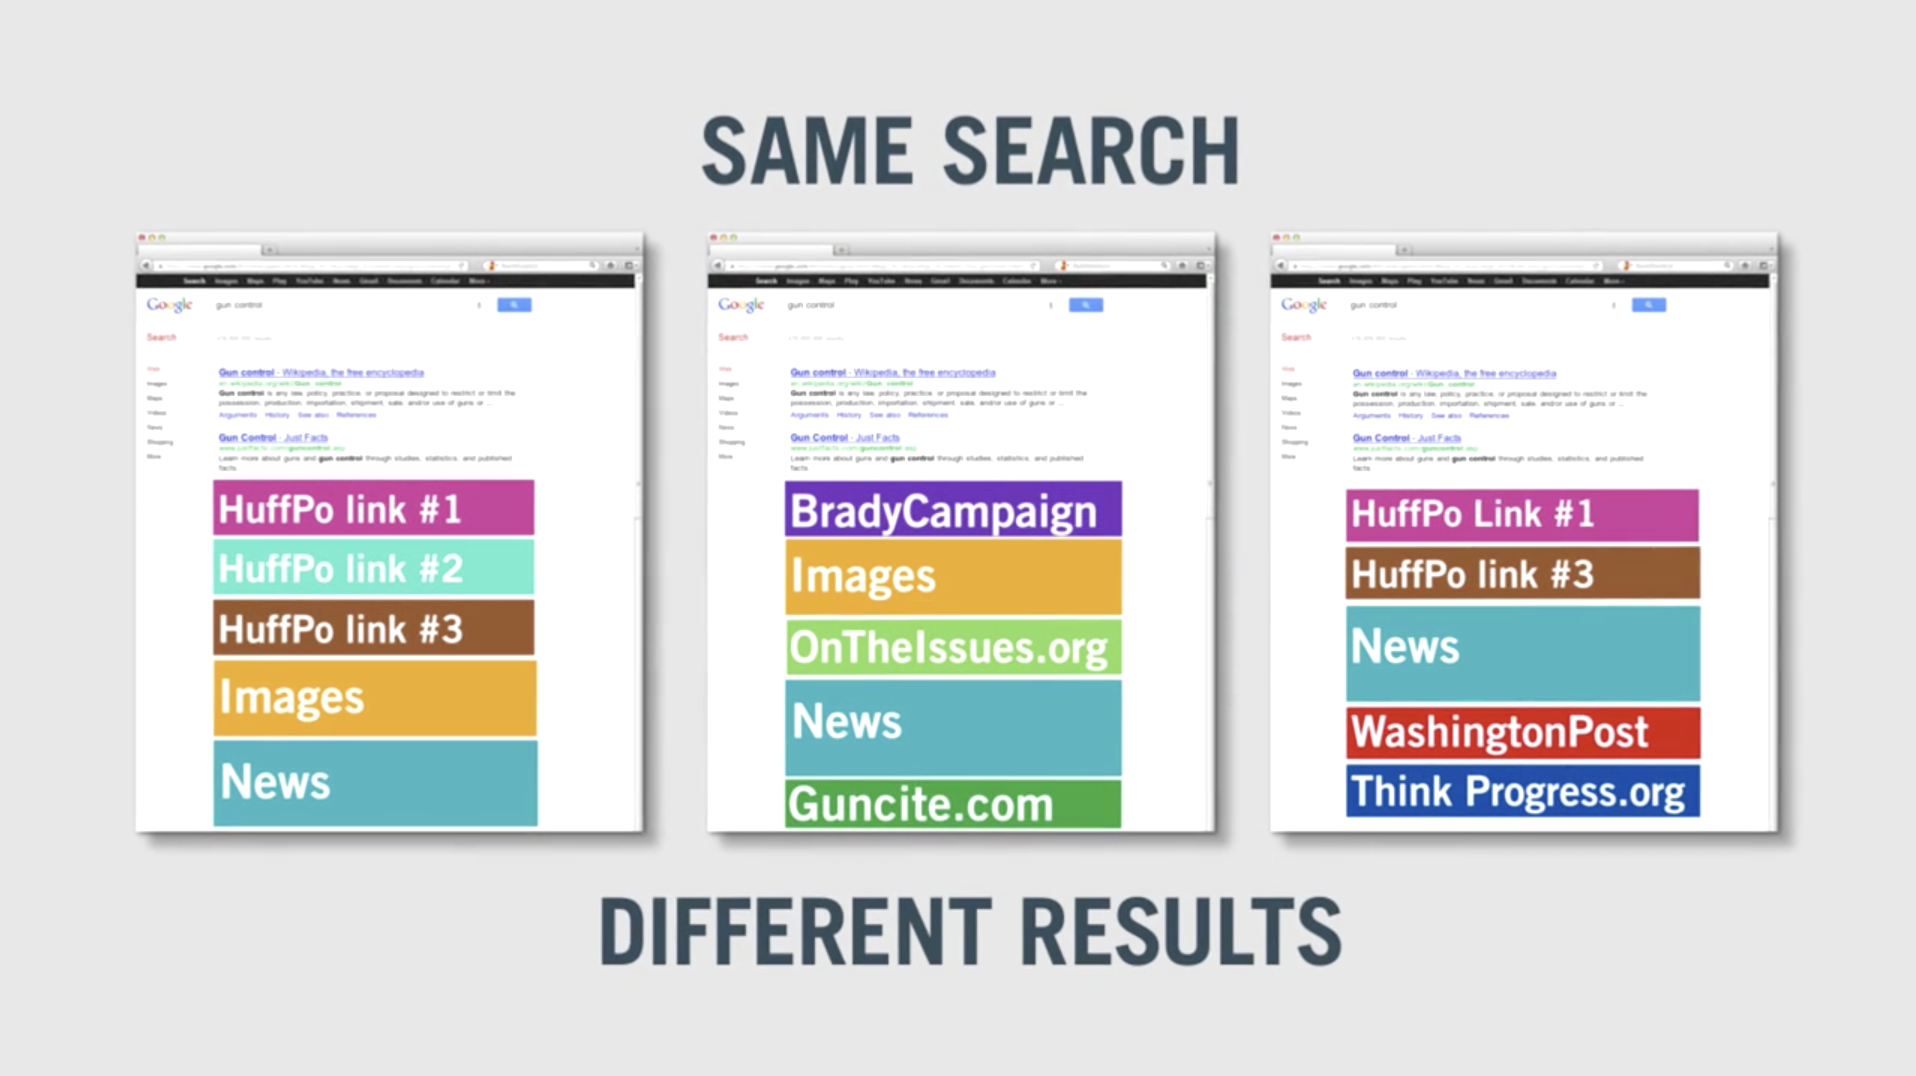 Image showing three separate results from the same search that vary greatly from person to person.